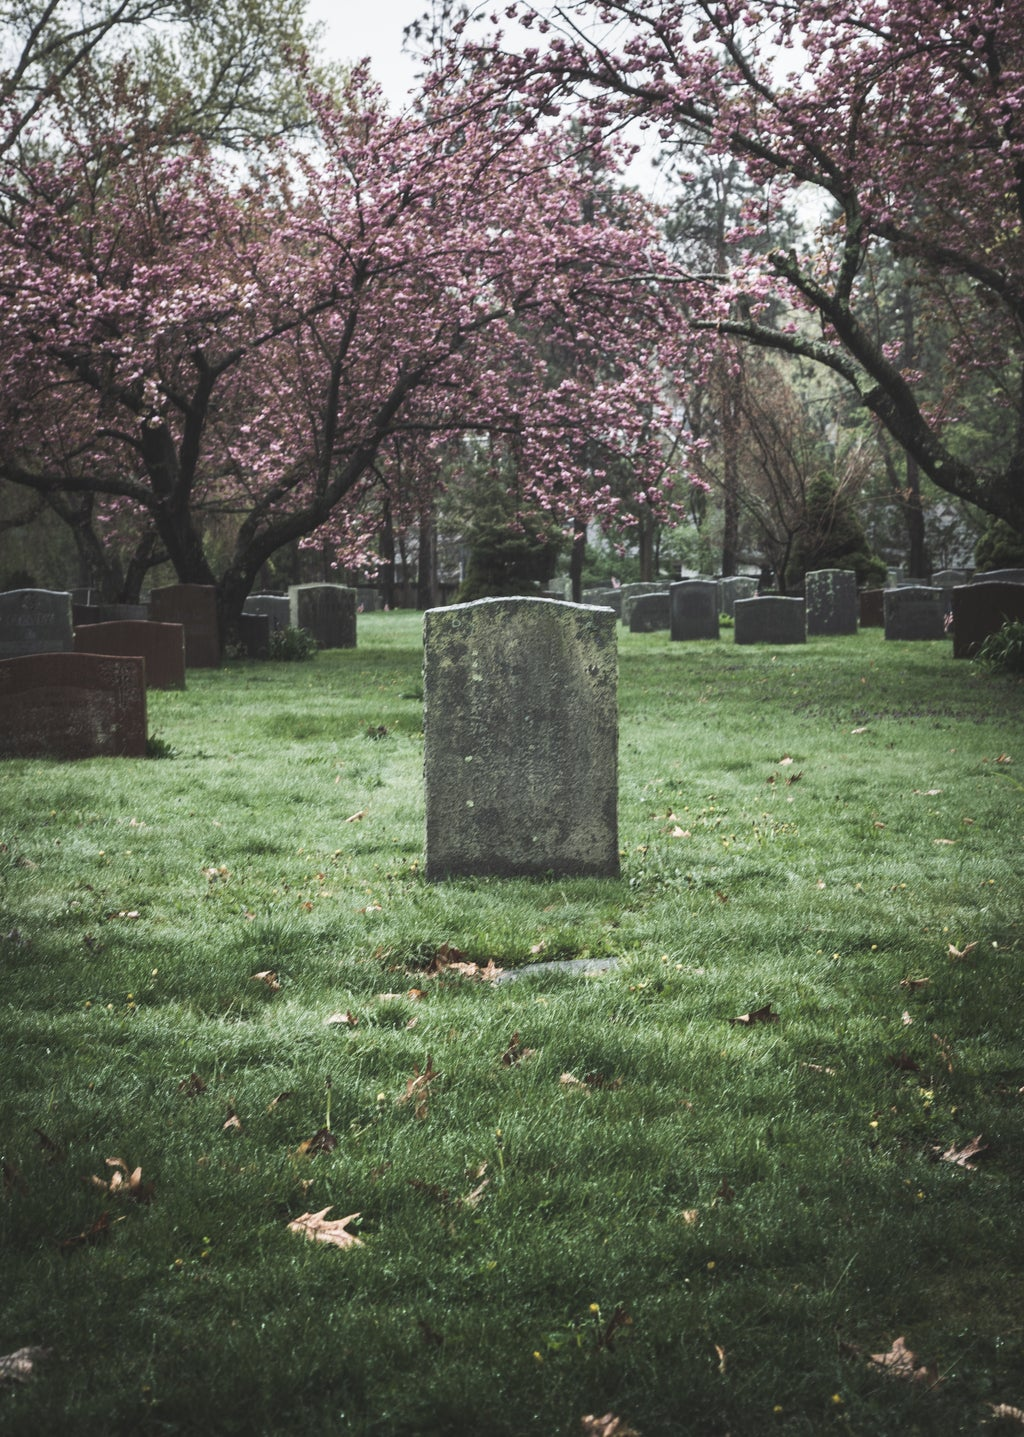 gravesite surrounded by blooming trees